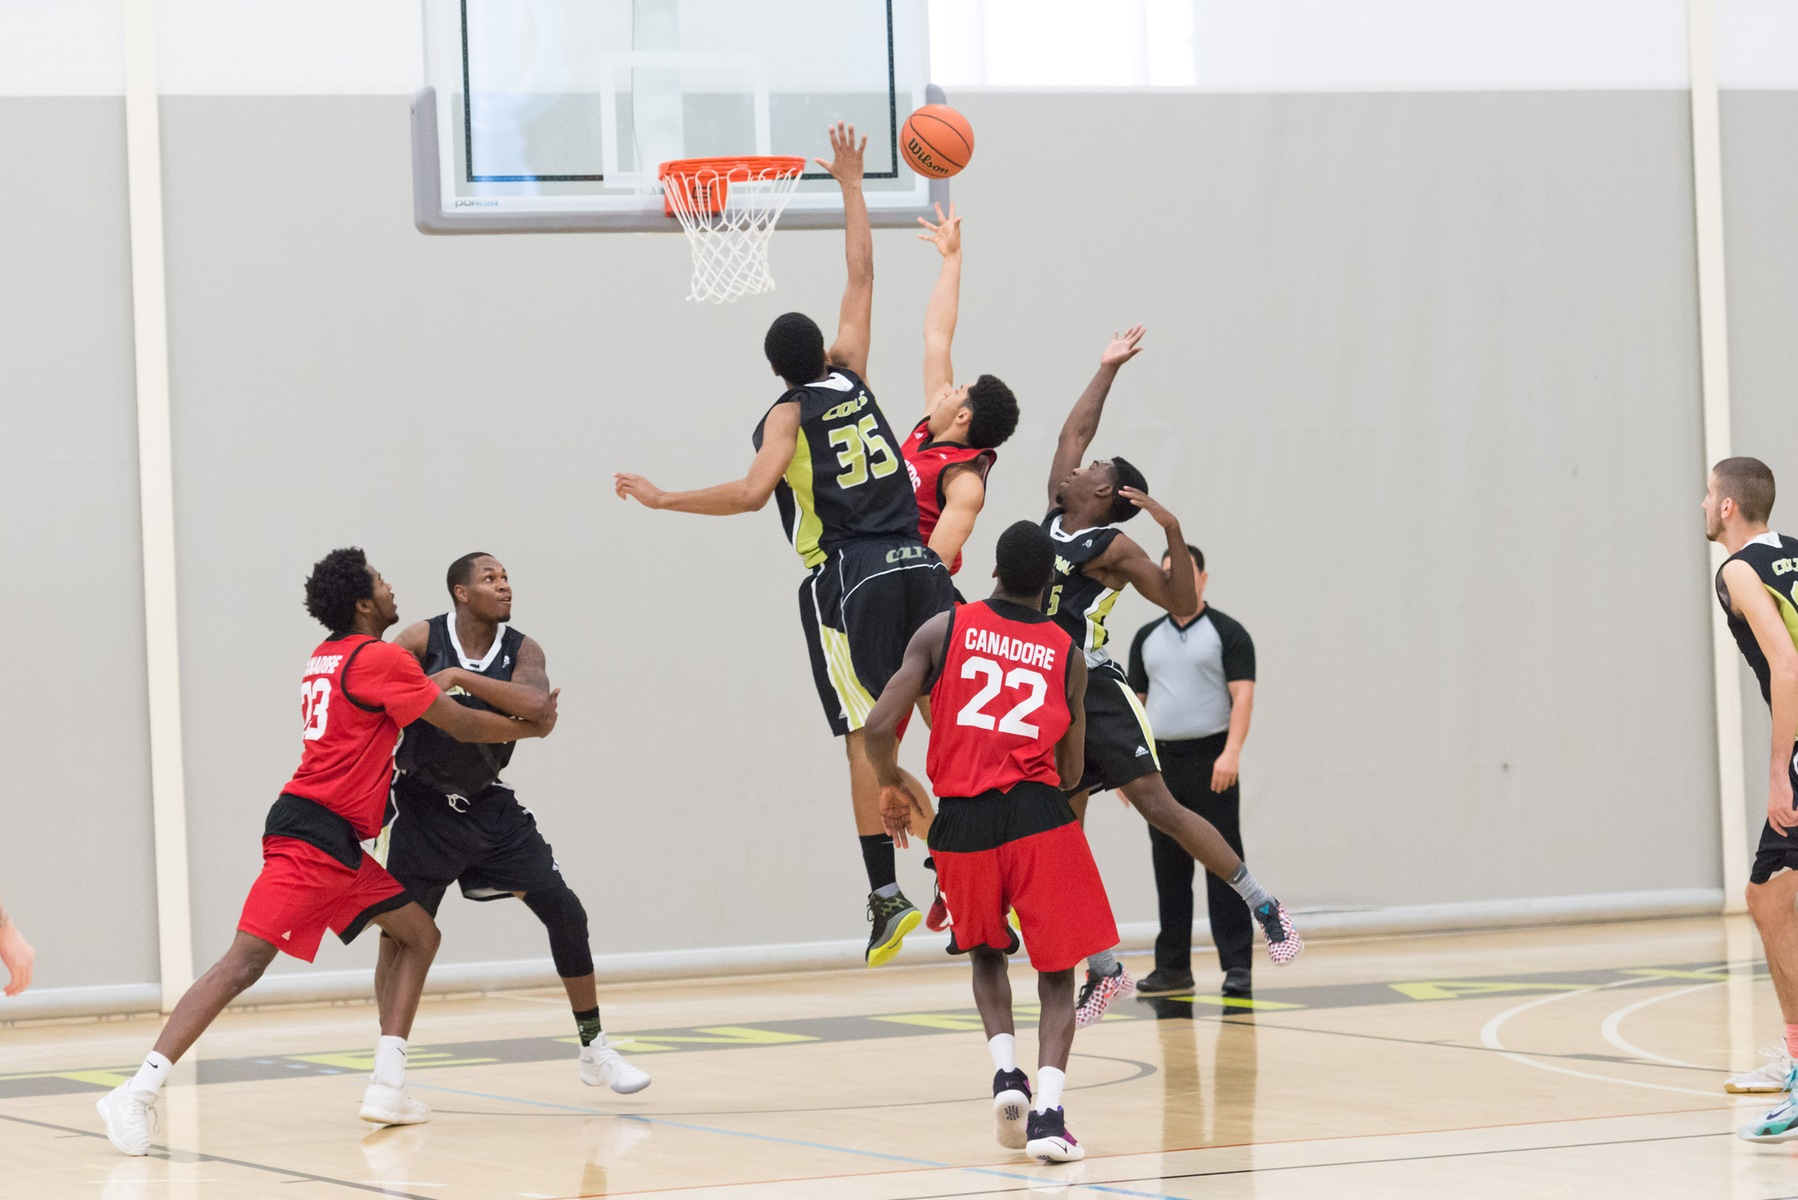 Colts men's basketball player Malcolm Jackson attempts to block the opposing Canadore player.